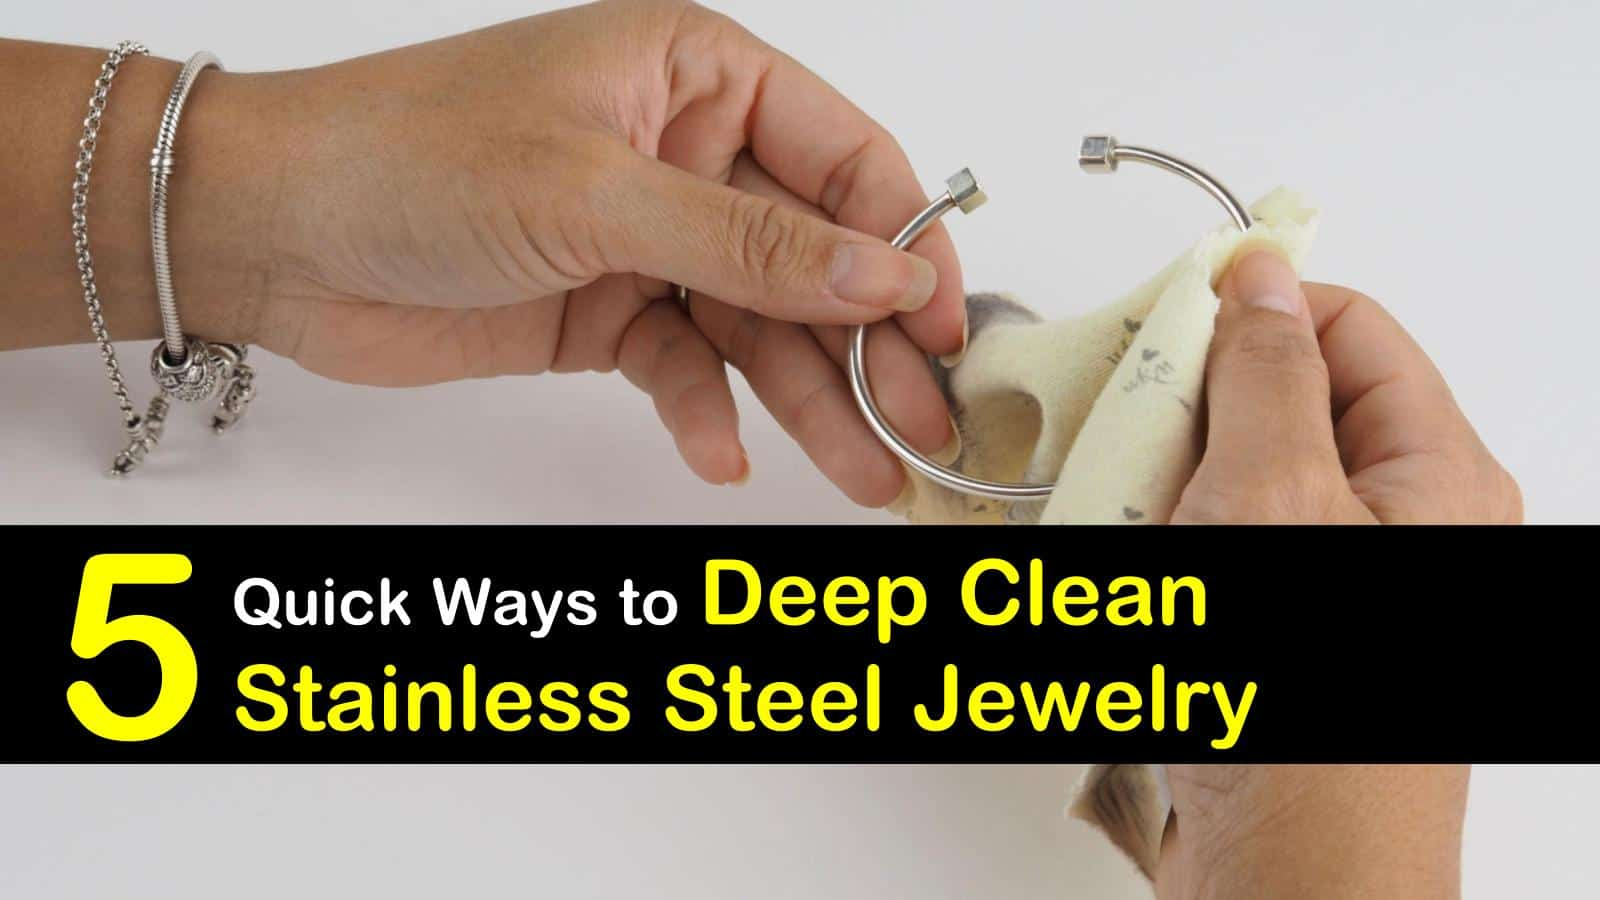 5 quick-ways-to-clean-stainless-steel-jewelry